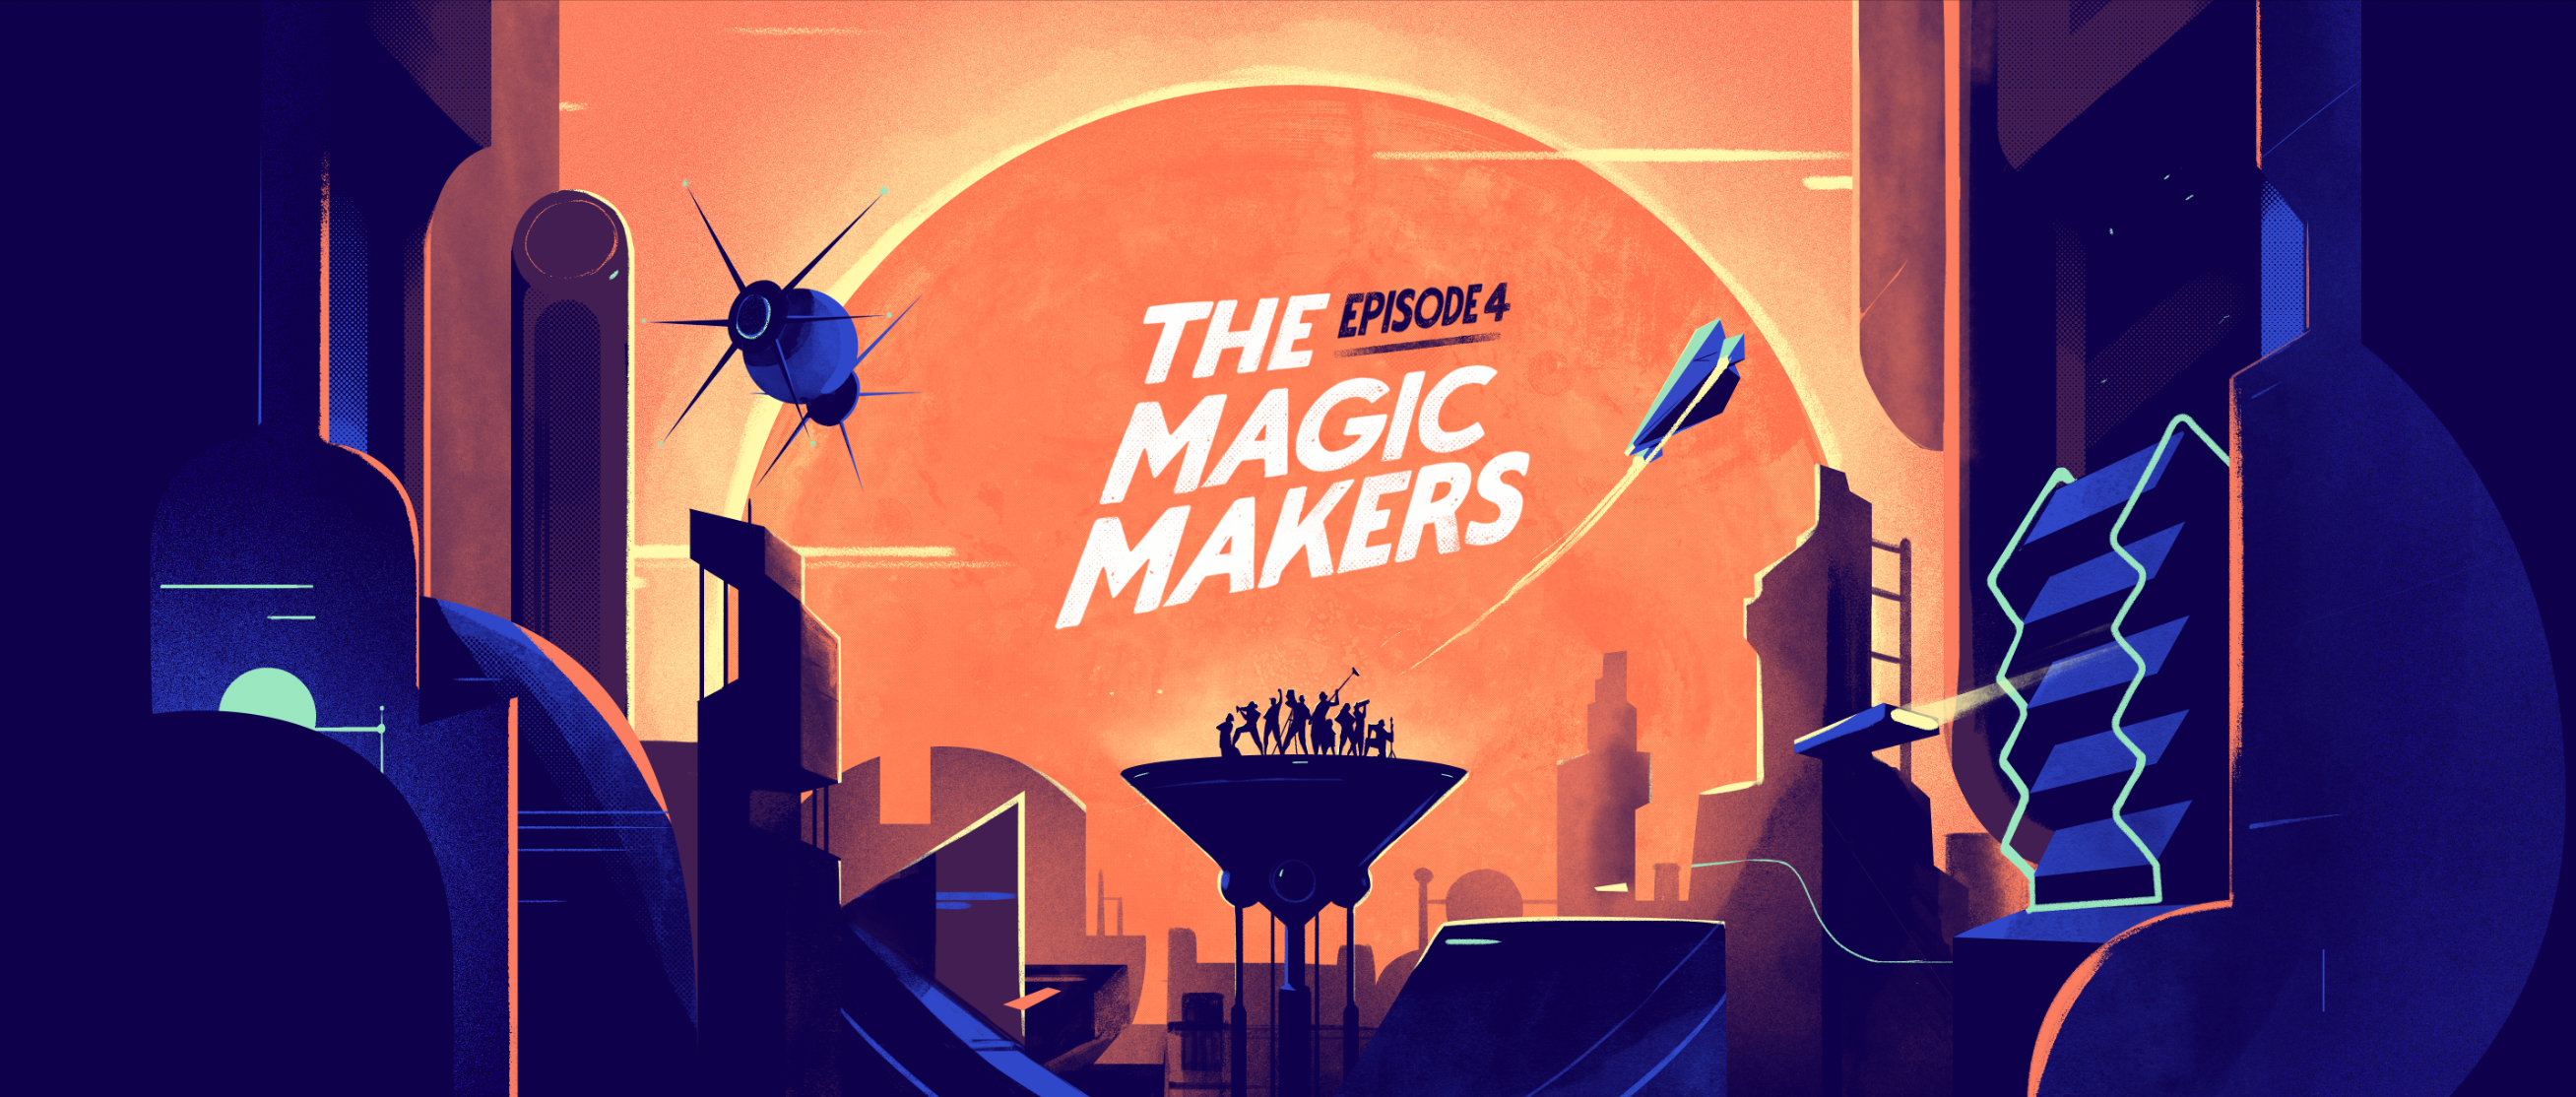 The Magic Makers / Andriod Docuseries  Image